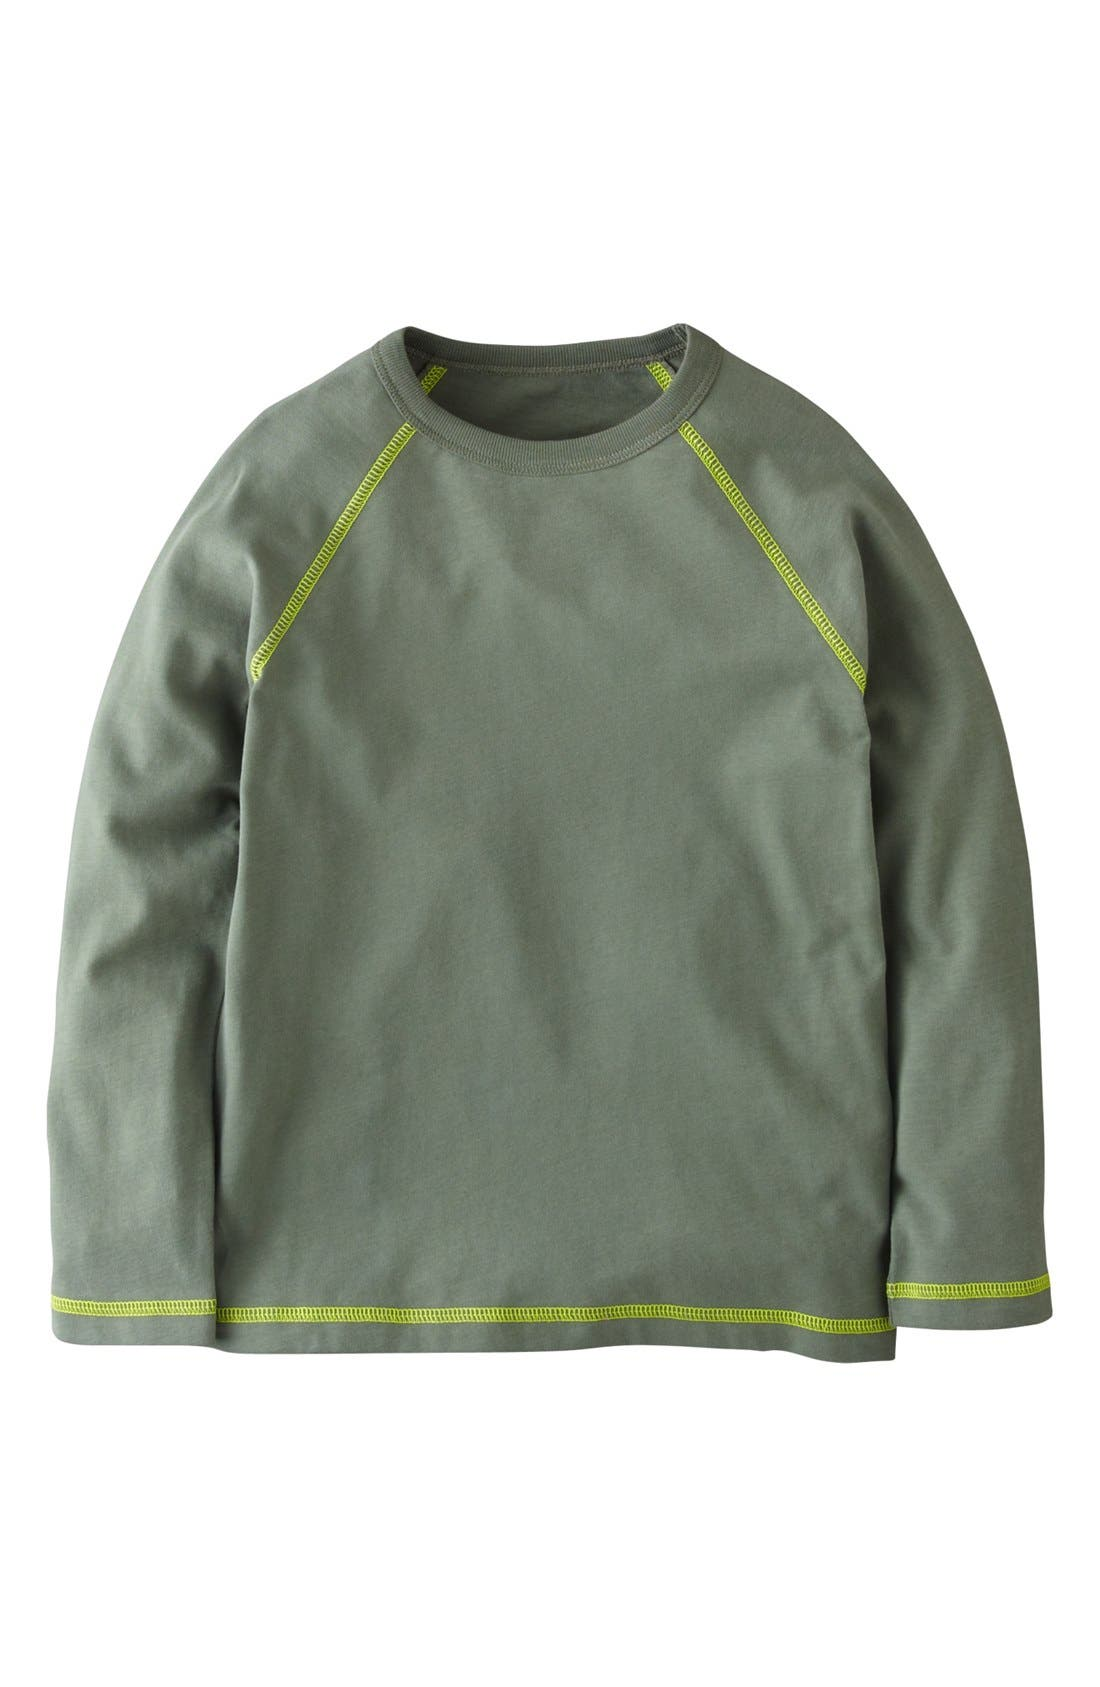 Alternate Image 1 Selected - Mini Boden Sueded Cotton T-Shirt (Toddler Boys, Little Boys & Big Boys)